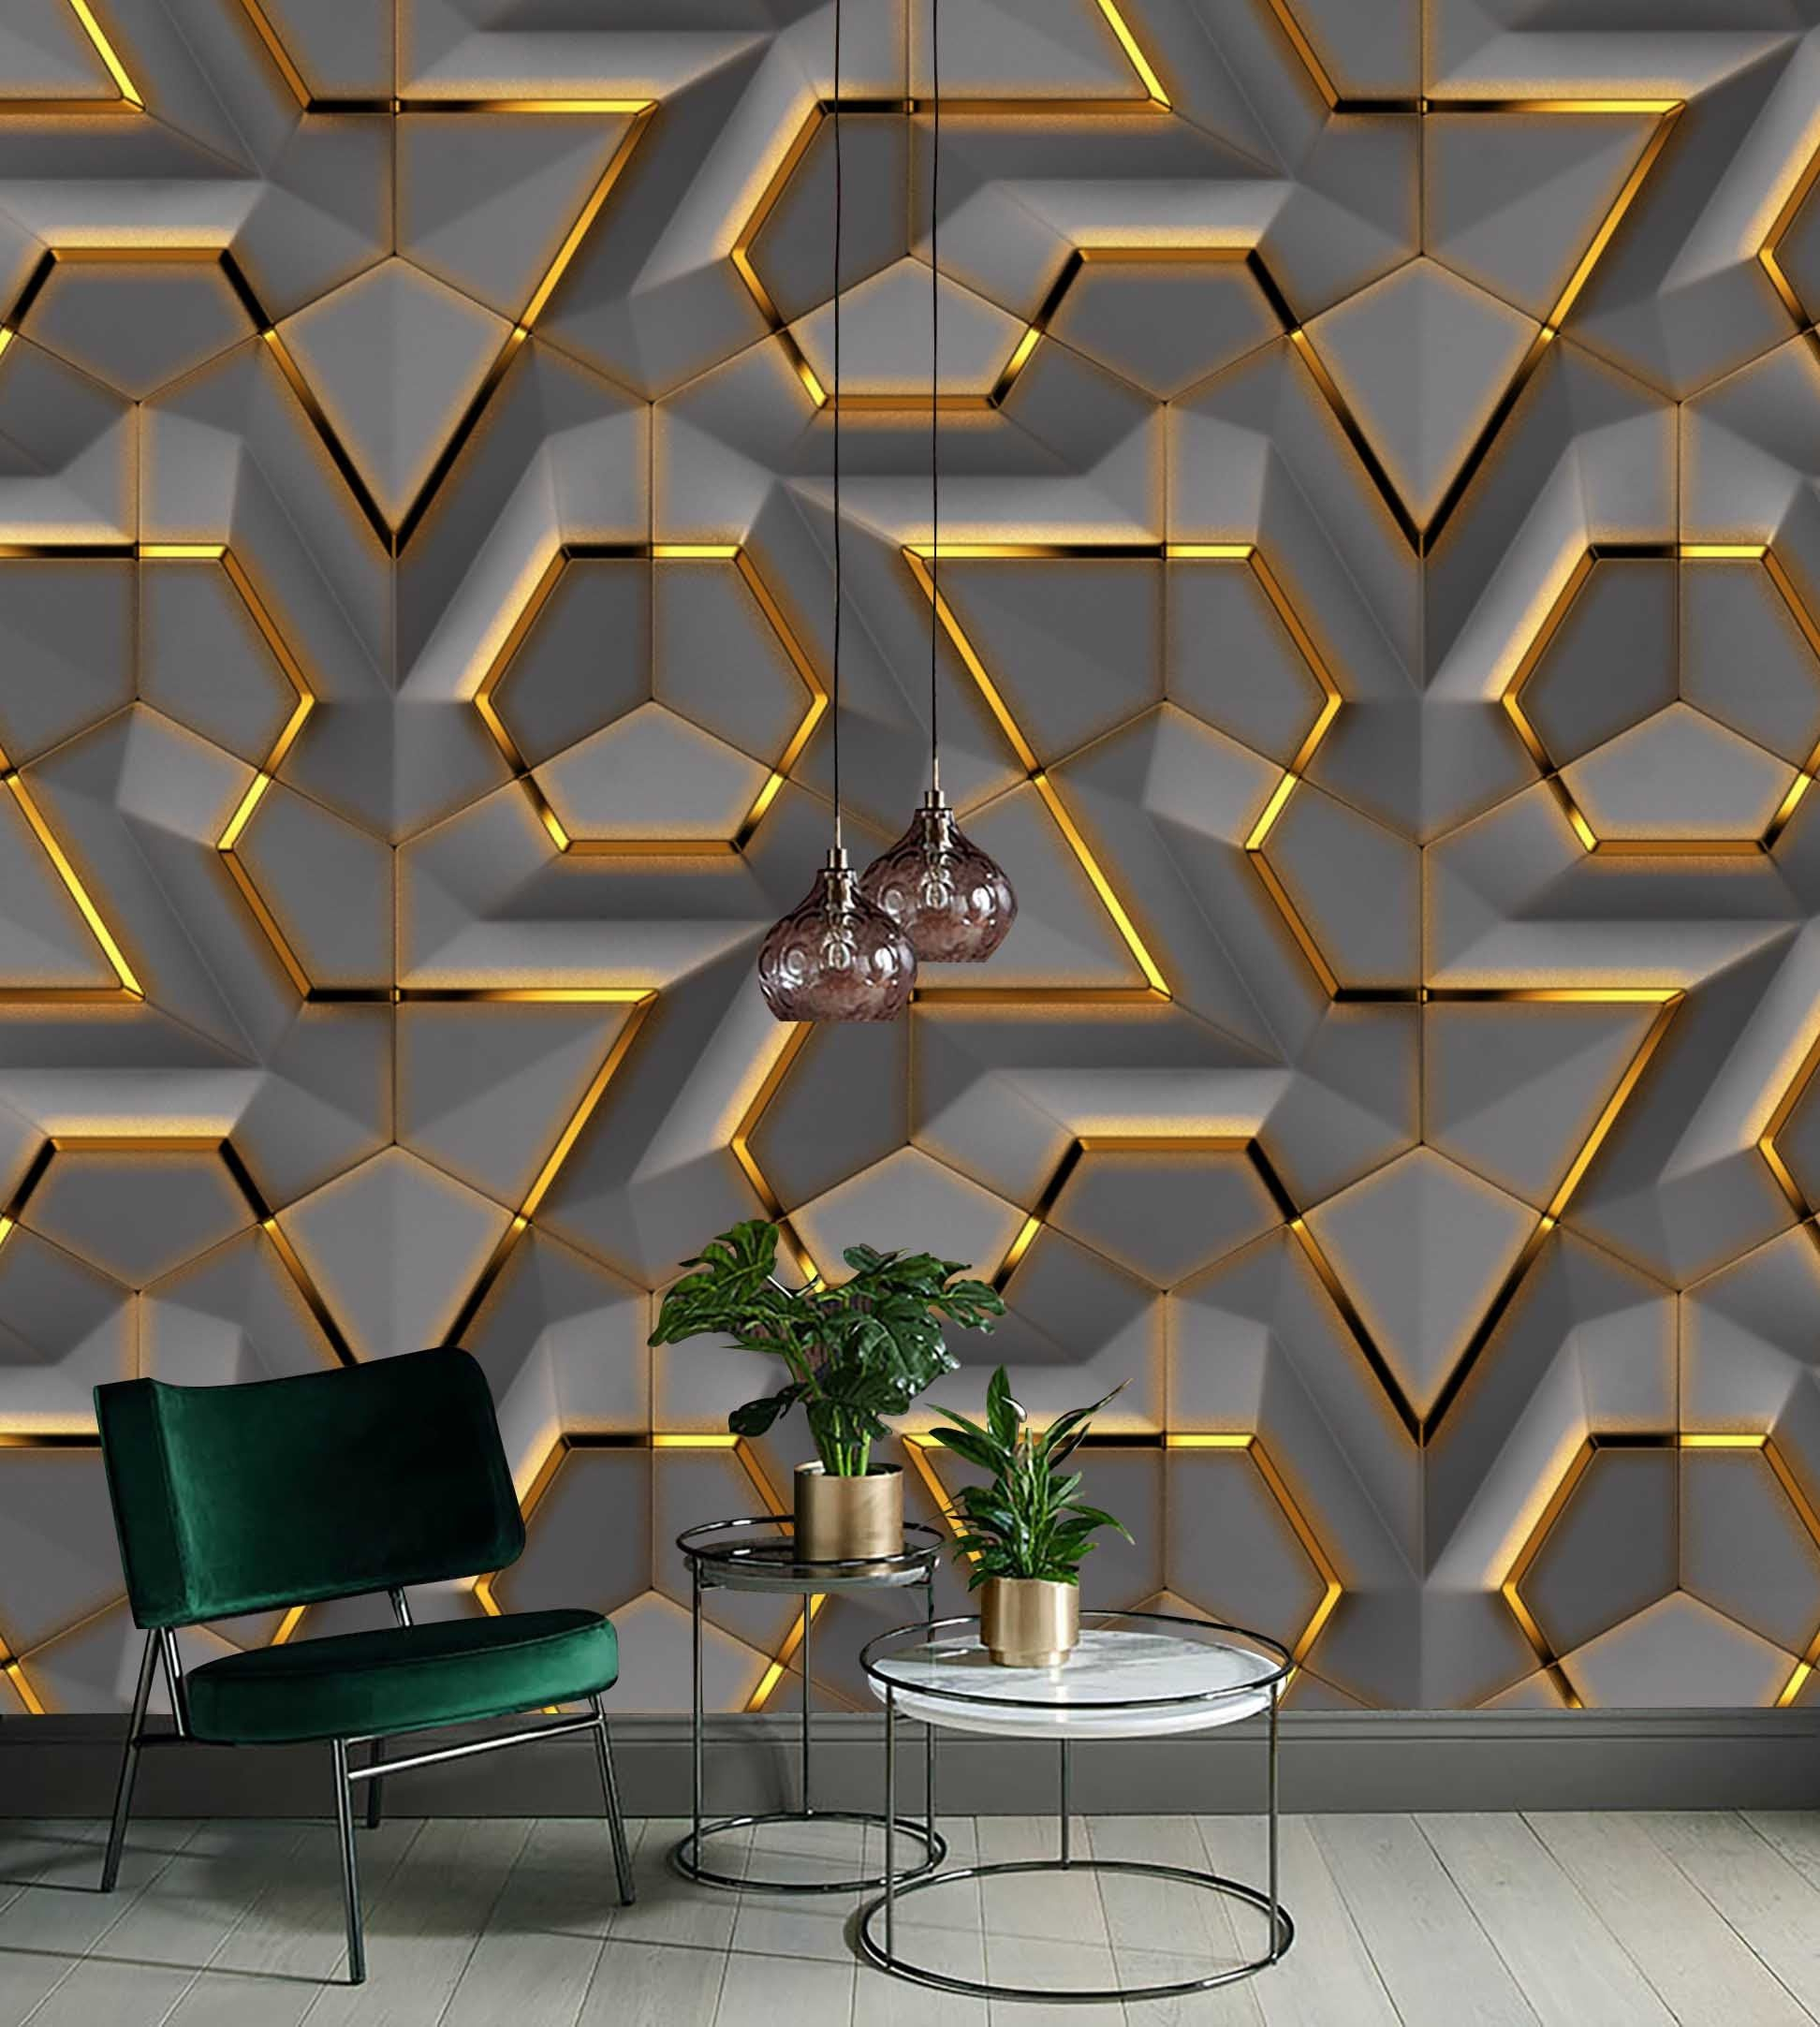 Gray Panel Gold Look Decor Geometric Background Wallpaper Self Adhesive Peel And Stick Wall Sticker Wall Decoration Scandinavian Removable Living Room Wall Wallpaper Wall Panel Design Decor